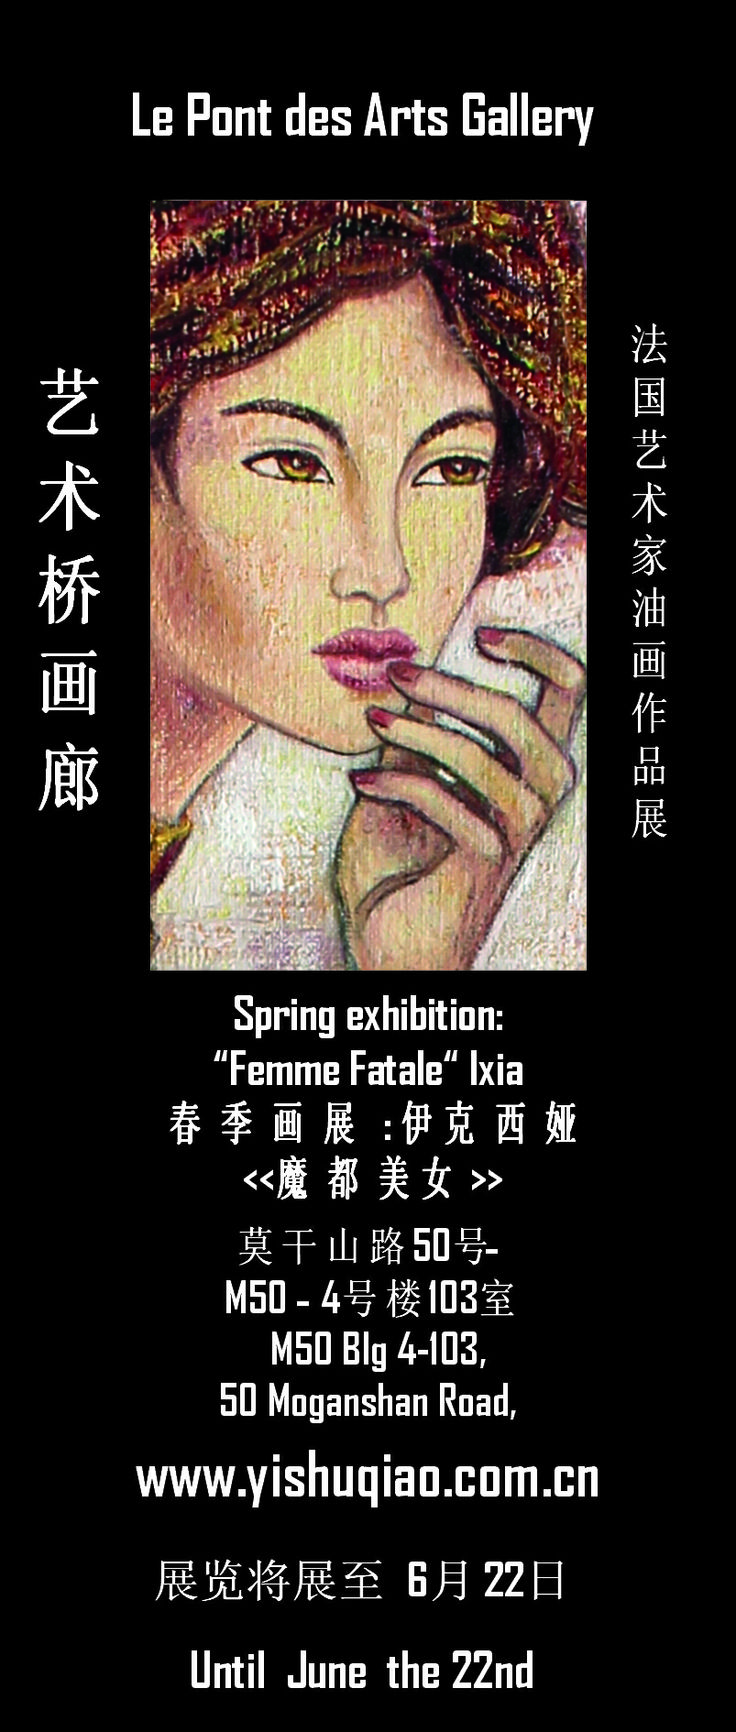 #exhibition prolonged in #shanghai #m50